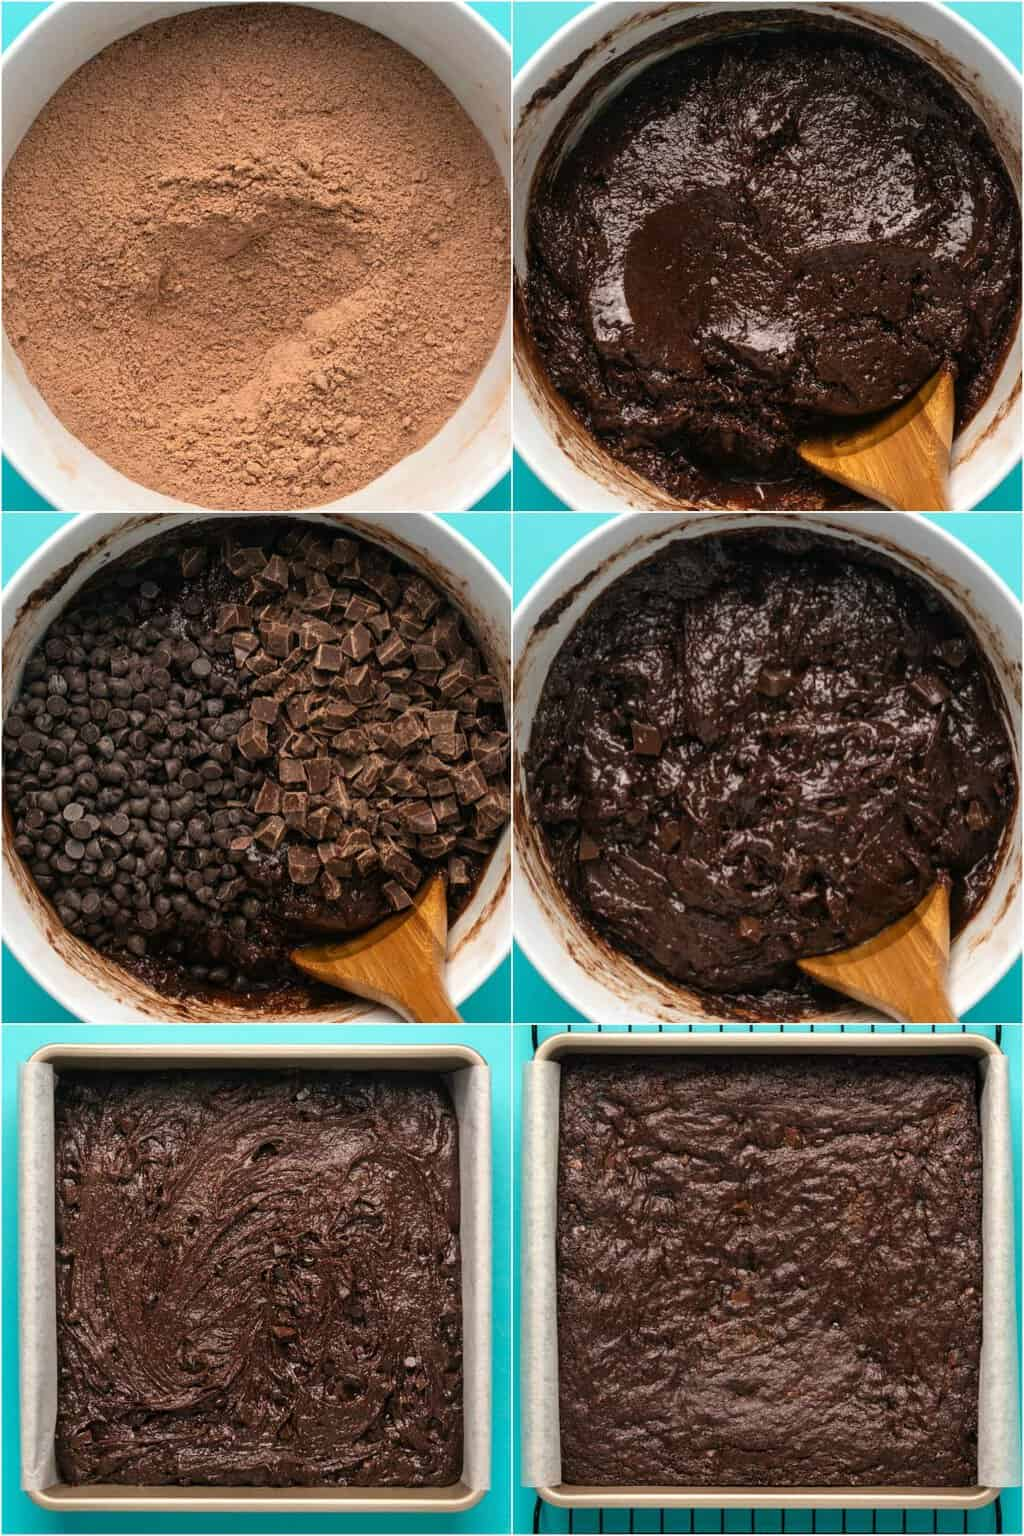 Step by step process photo collage of making vegan gluten free brownies